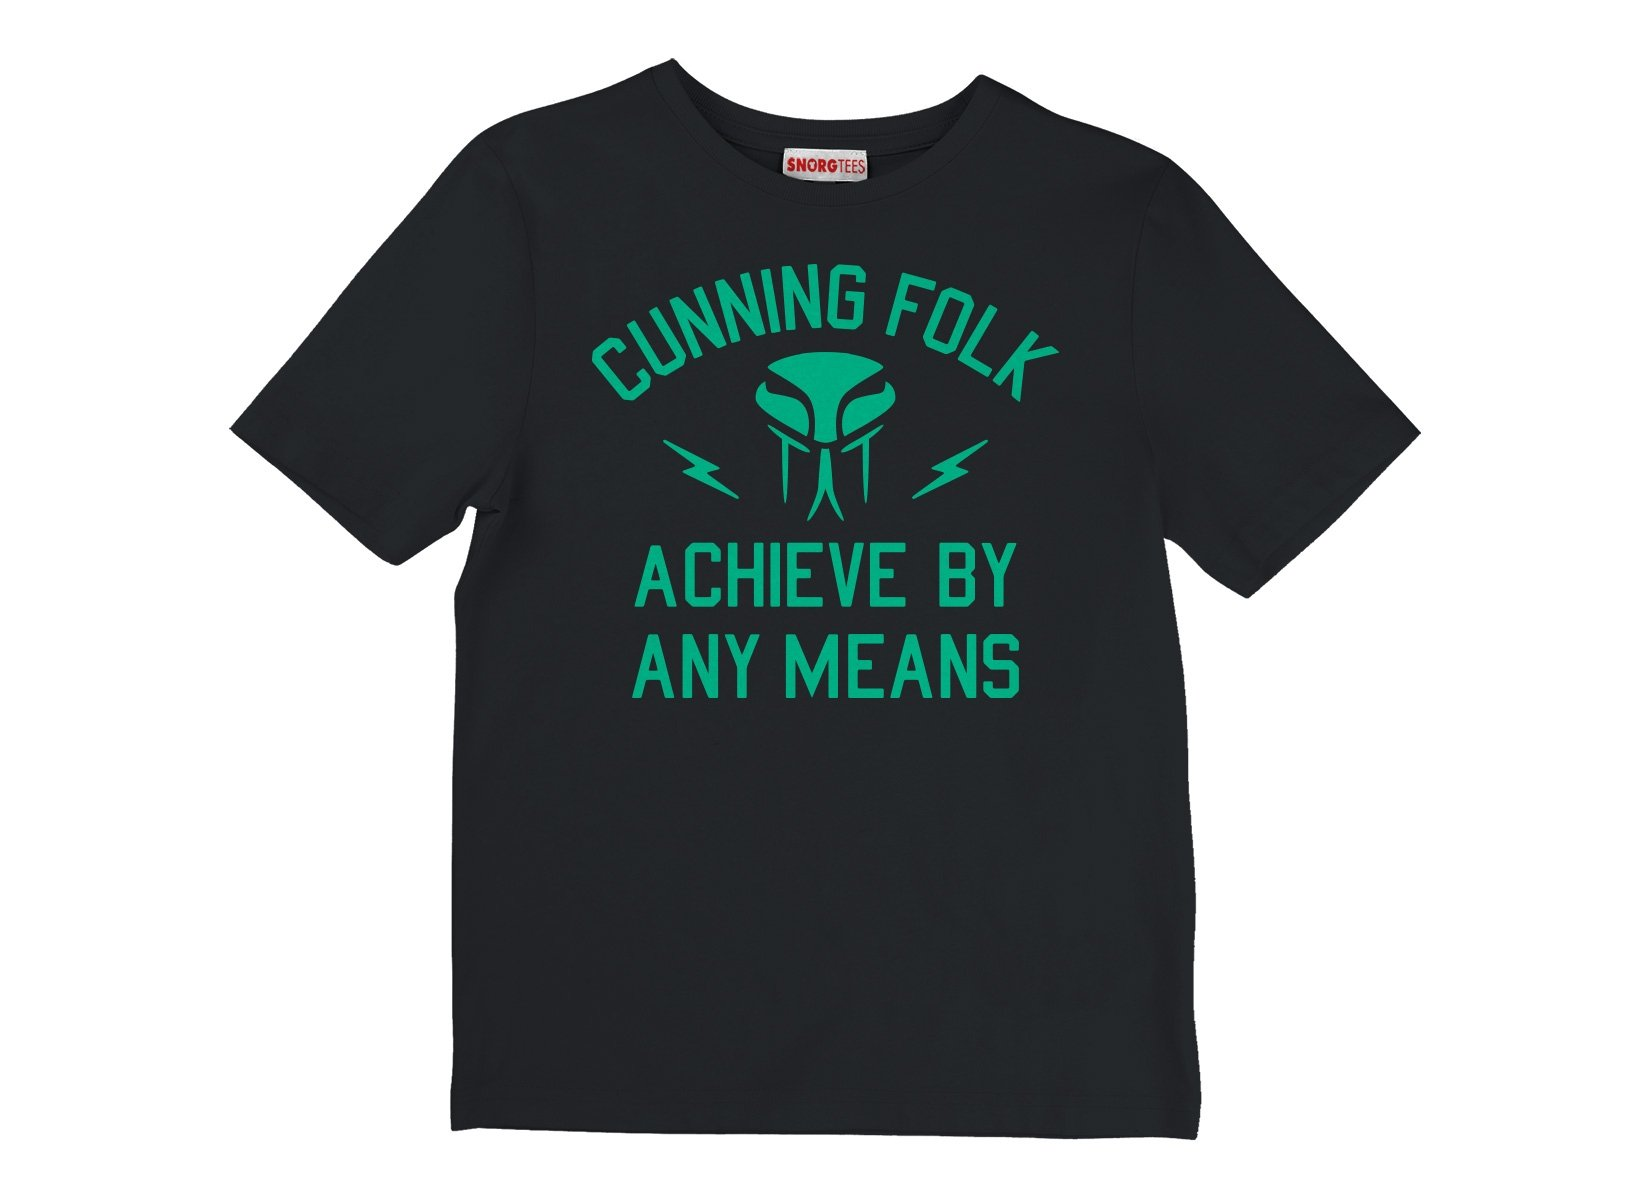 Cunning Folk Achieve By Any Means on Kids T-Shirt